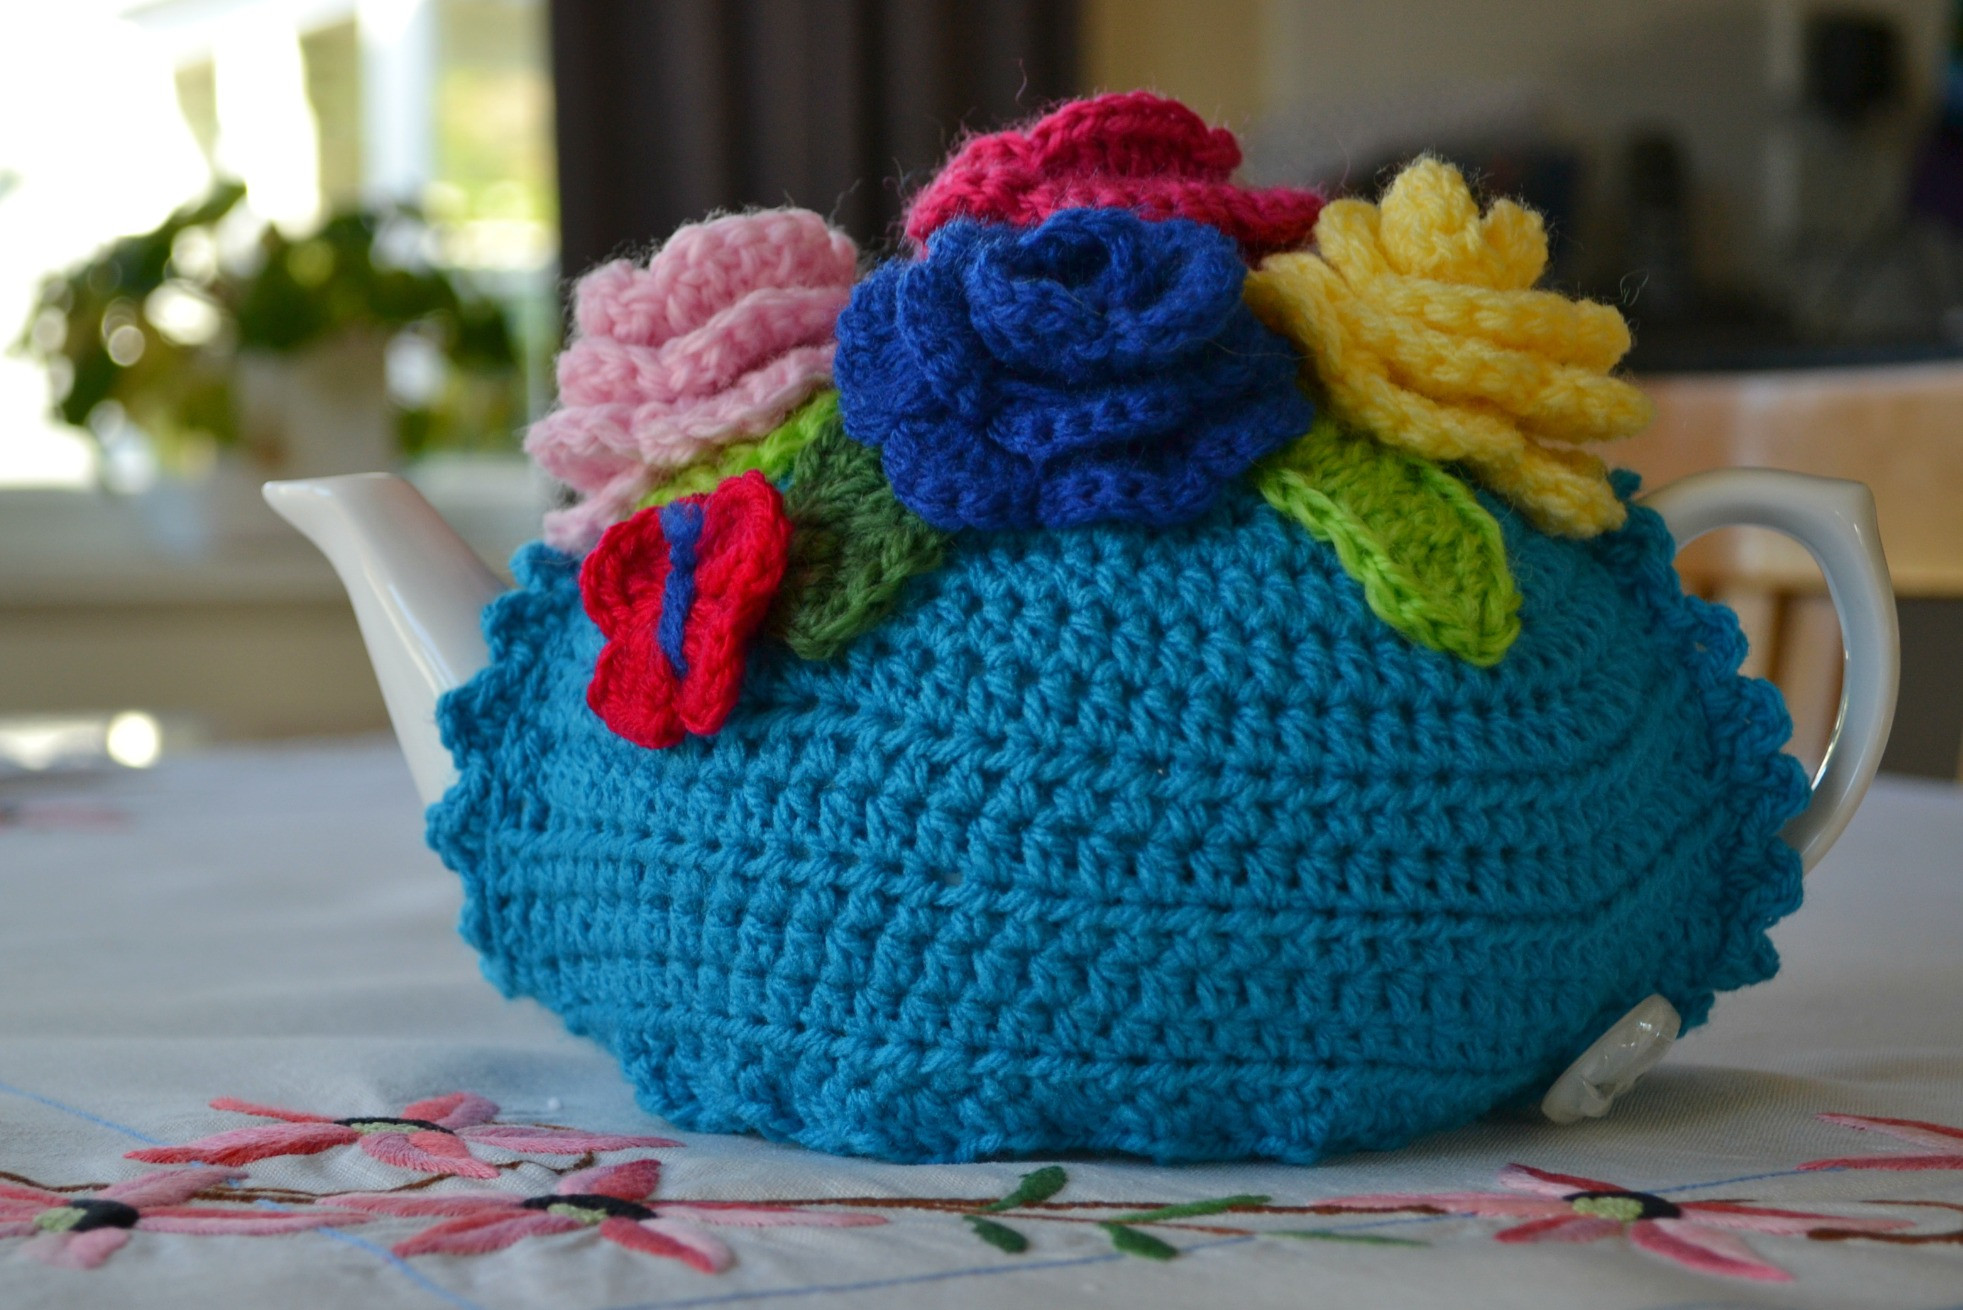 Crochet tea cosy pattern… finally – The Green Dragonfly